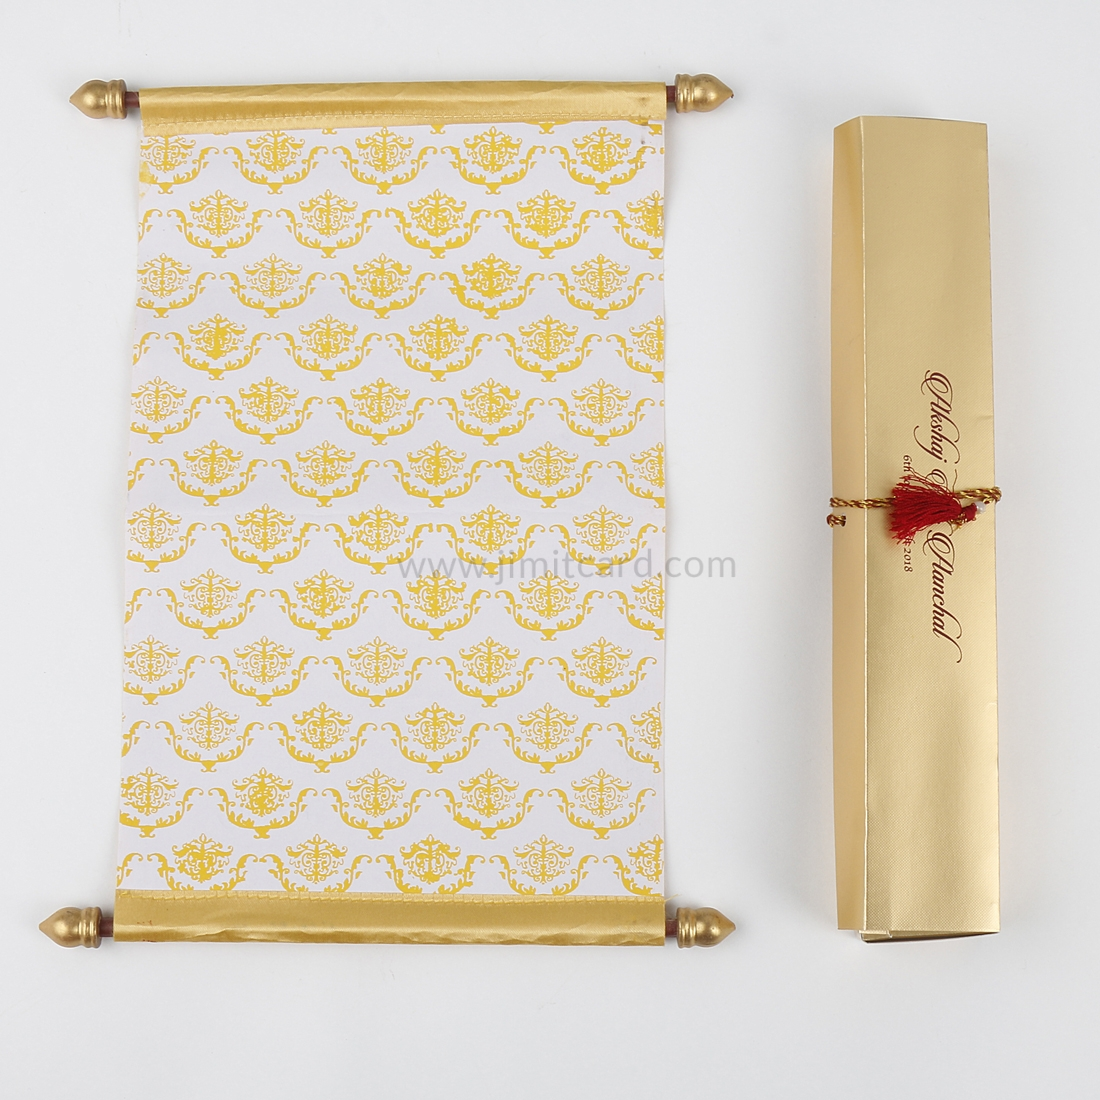 Design for Marriage Card Scroll Style in Golden Satin-9187